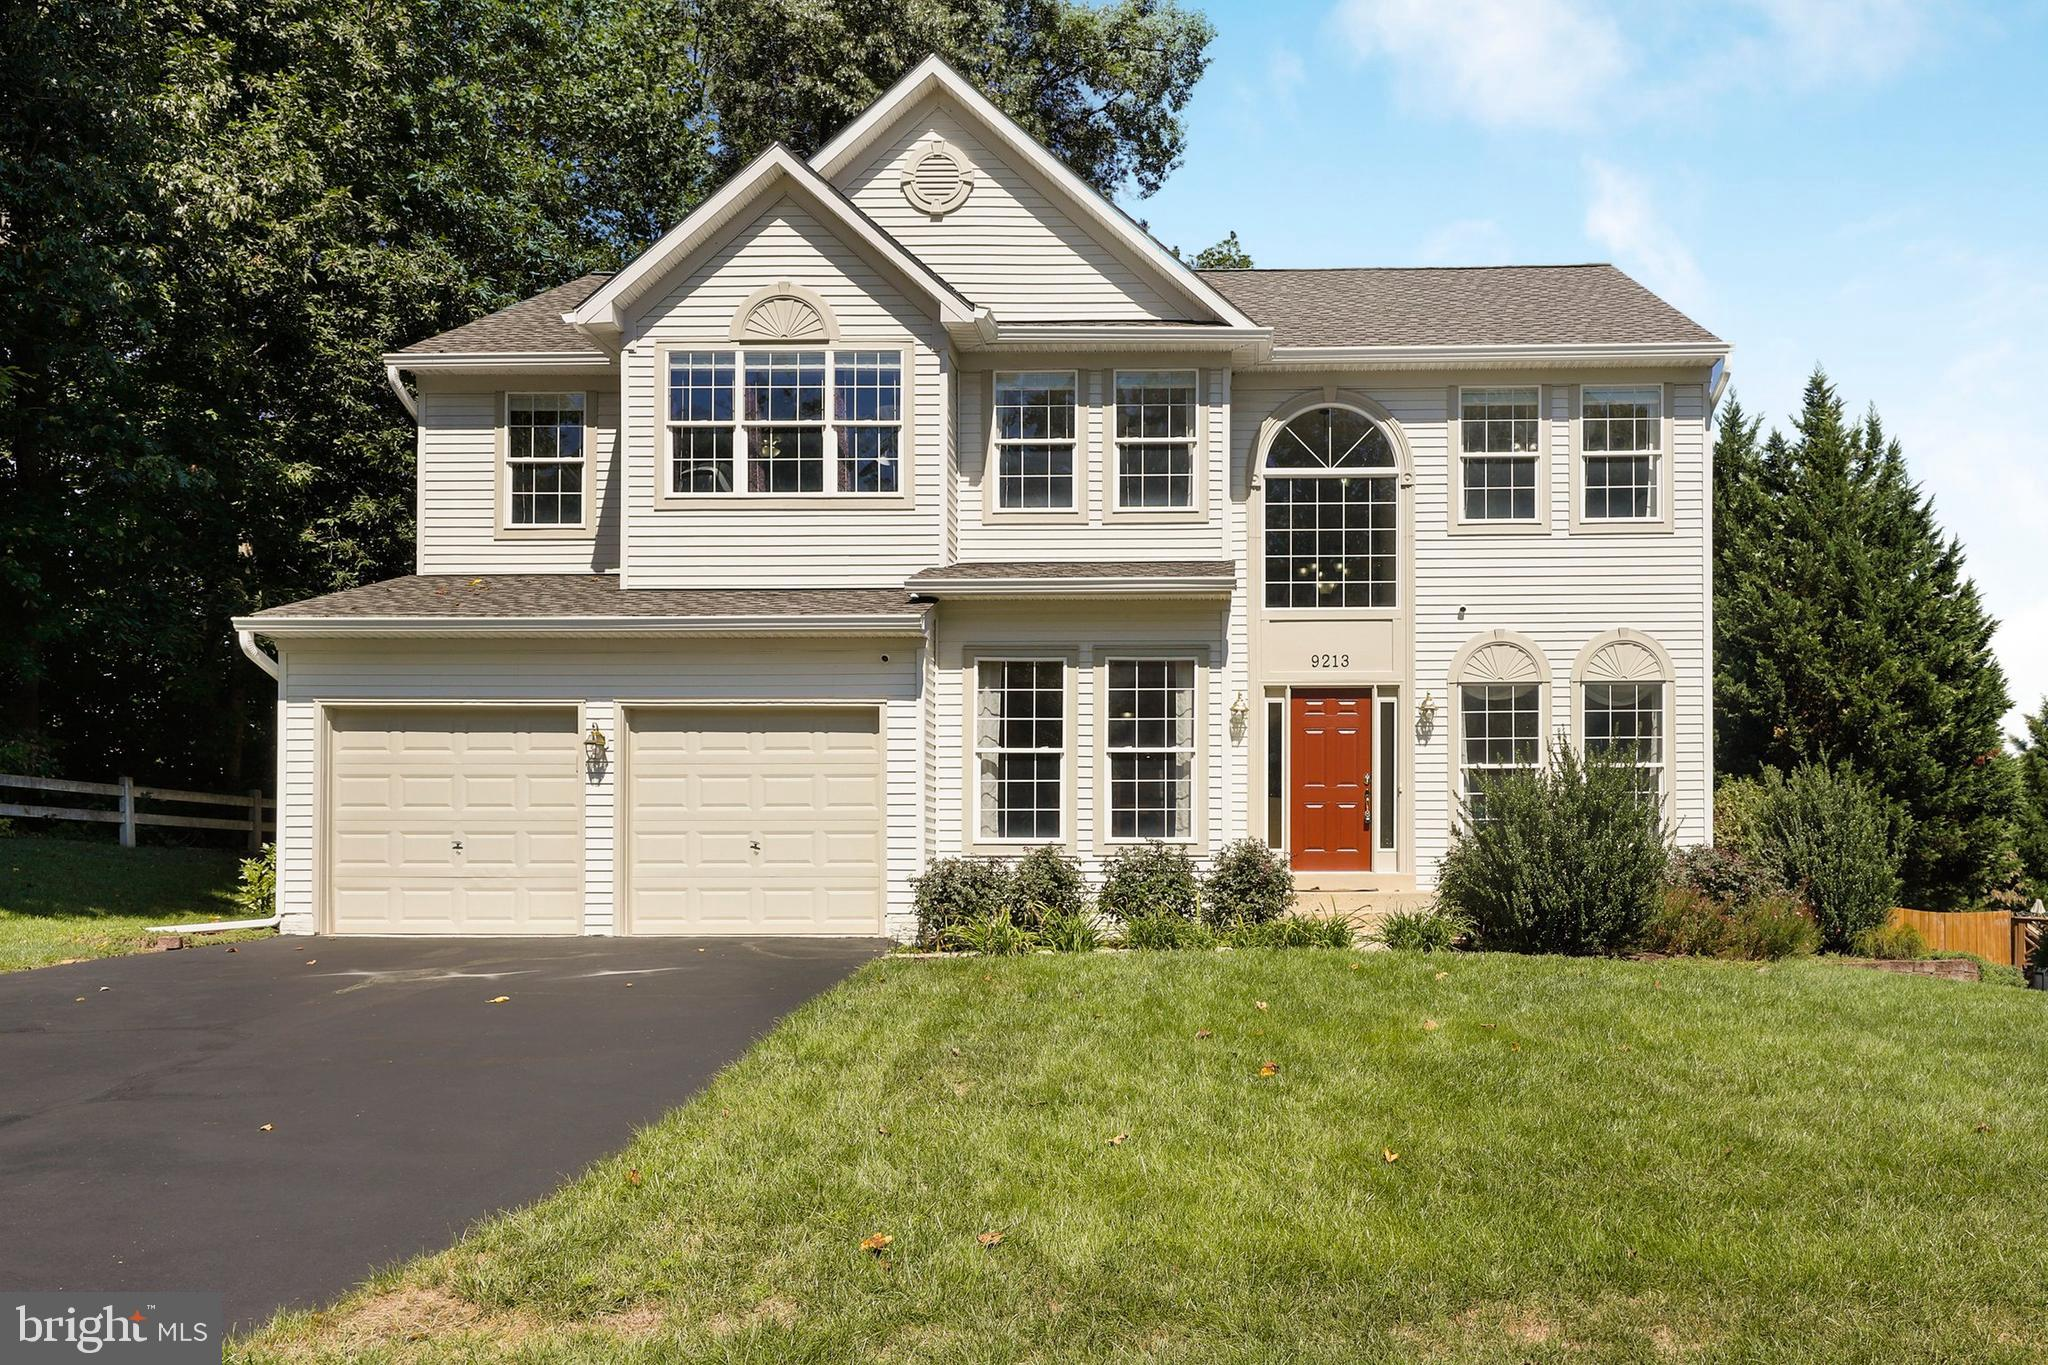 9213 WILLIAM STREET, MANASSAS PARK, VA 20111